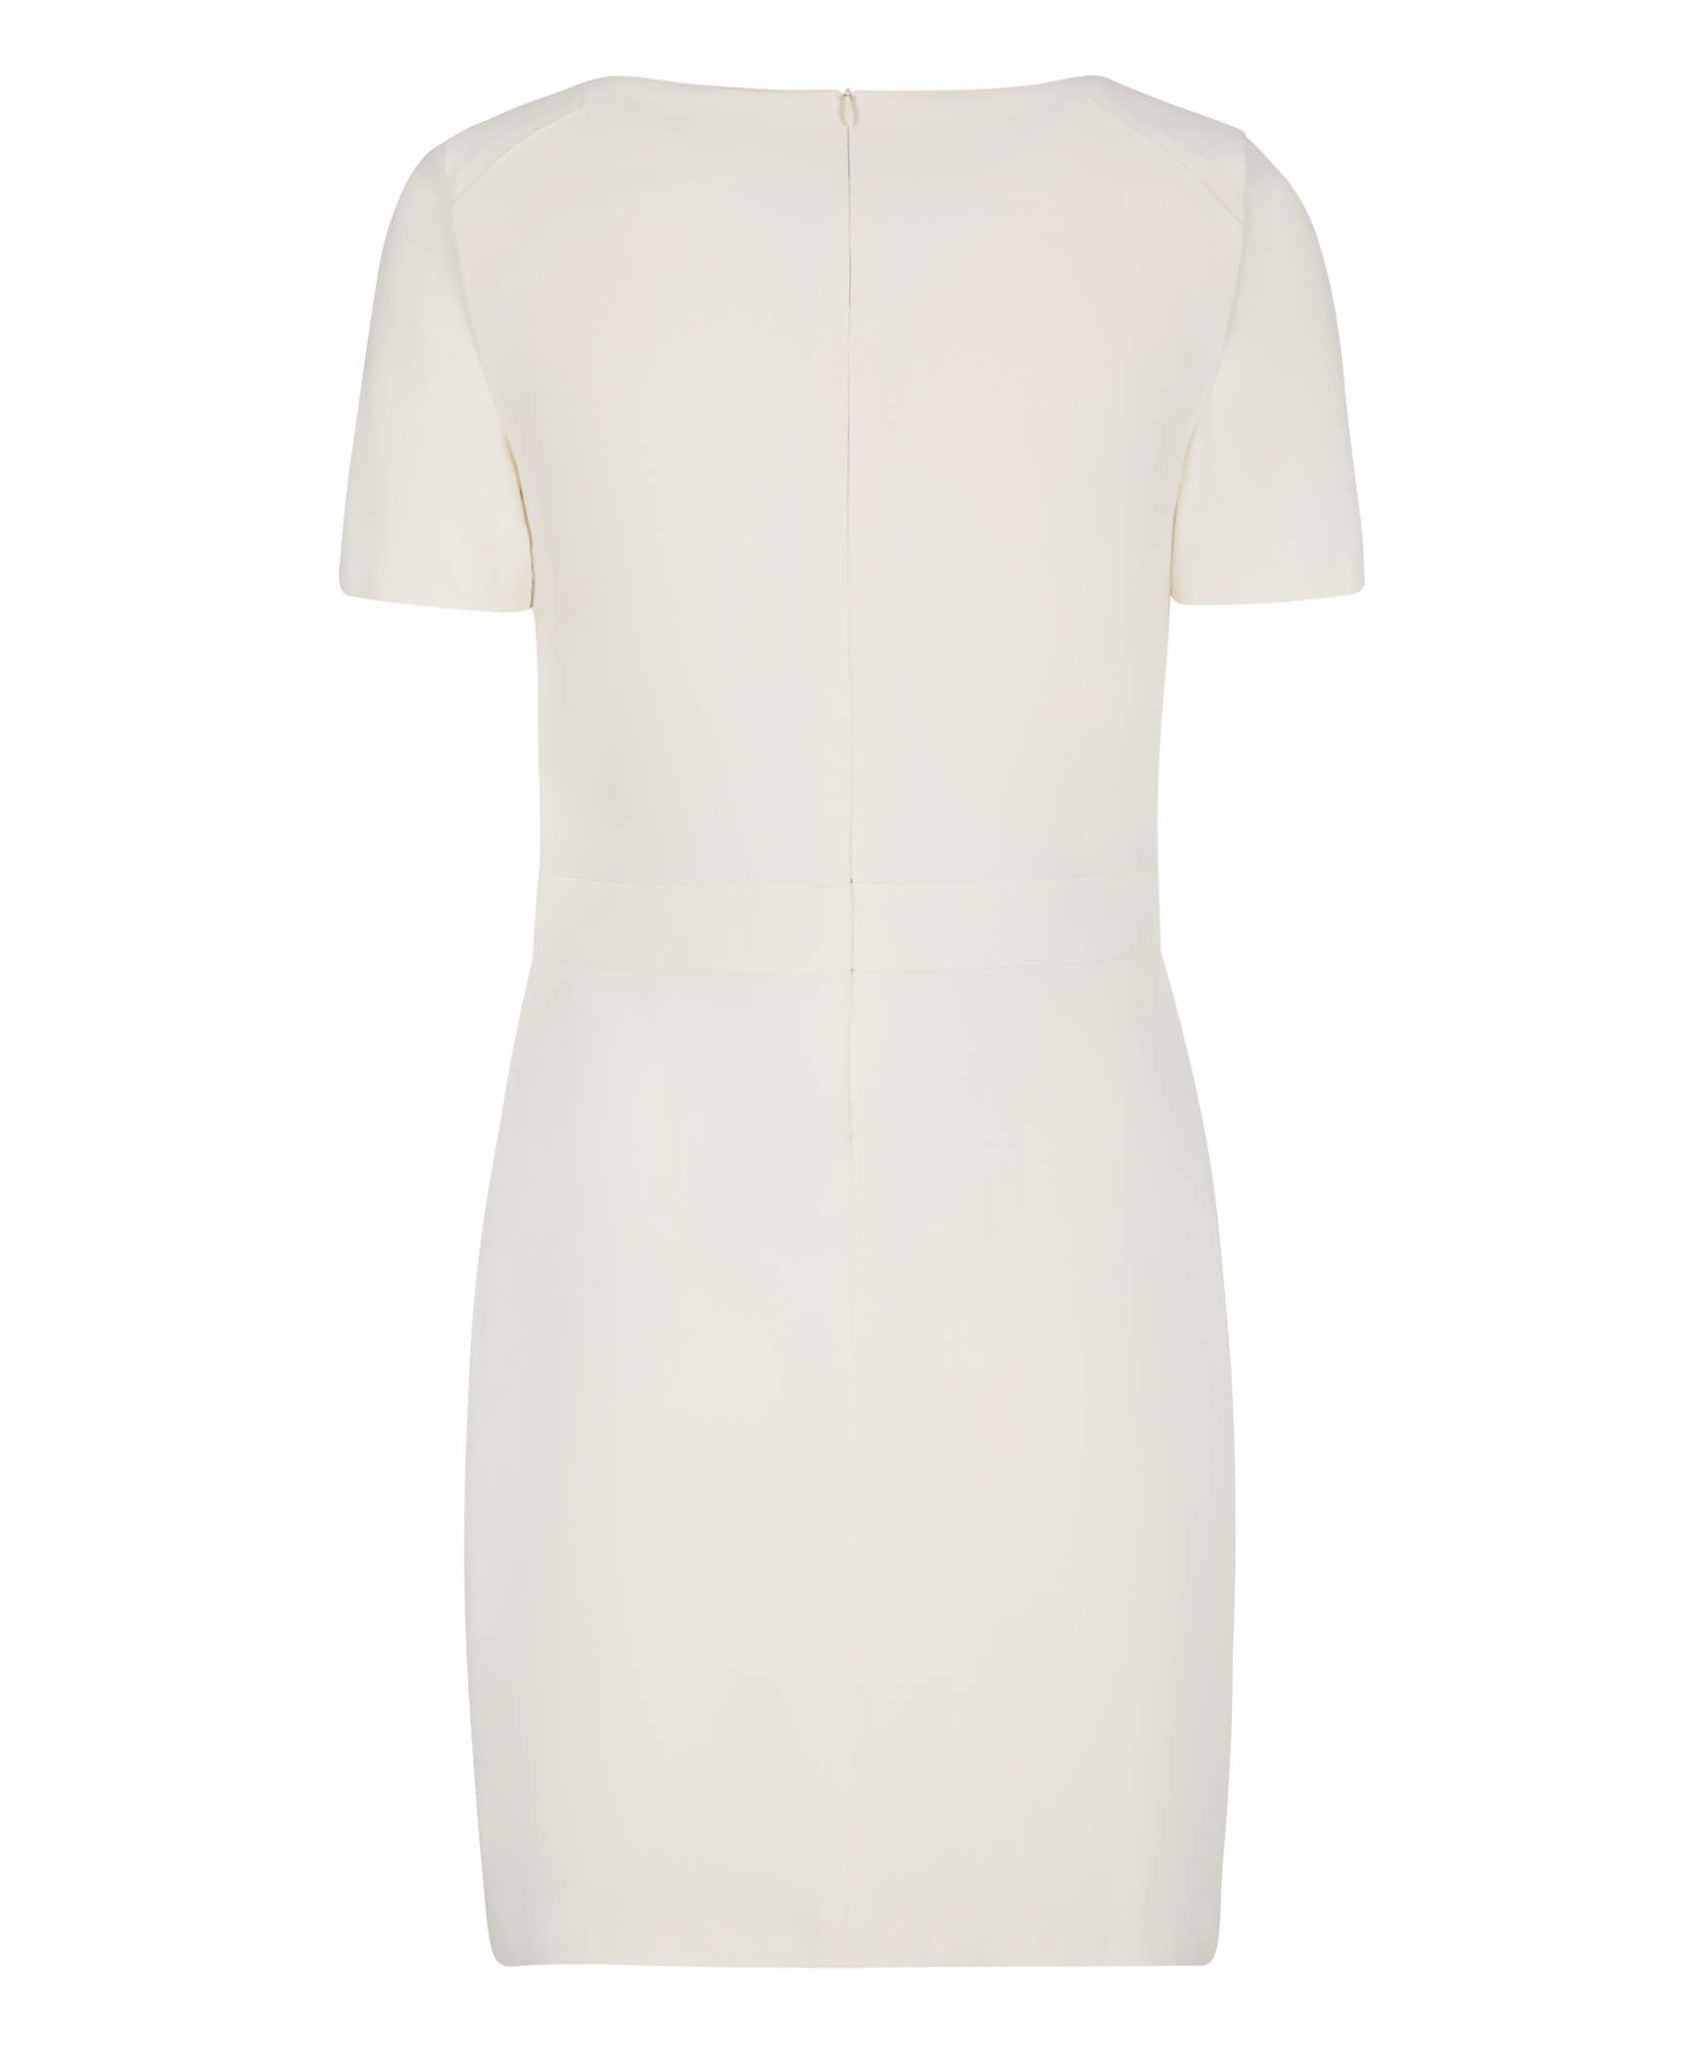 Petite Square Neck Ivory Dress - Jennifer-Anne